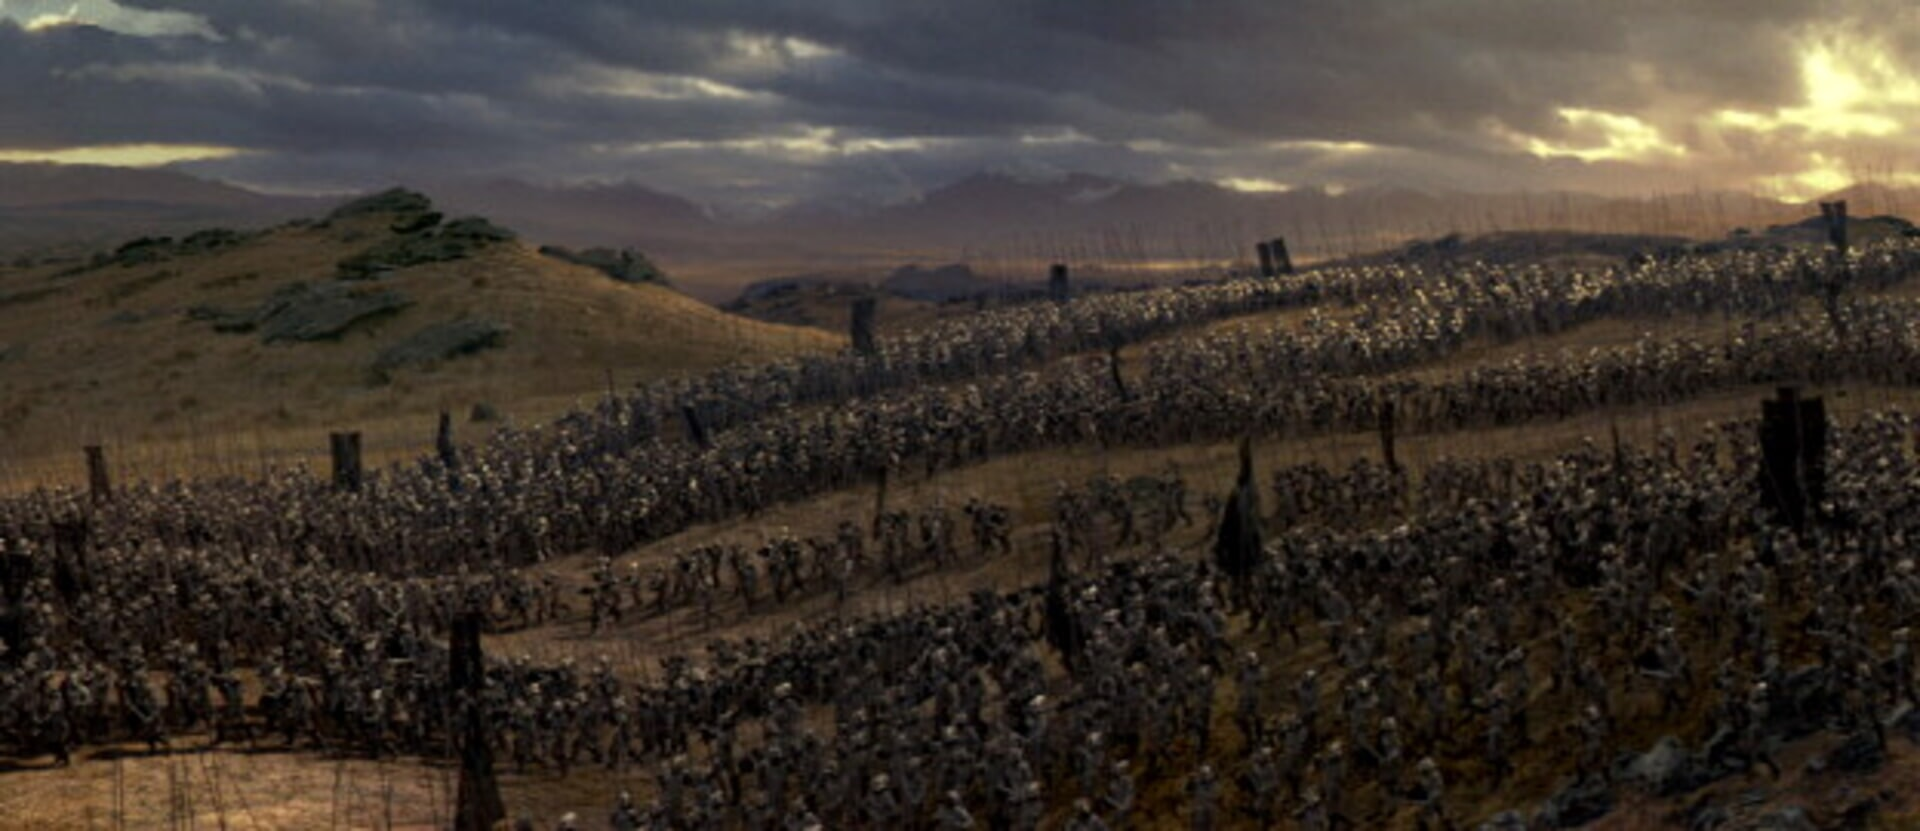 The Lord of the Rings: The Two Towers - Image 5